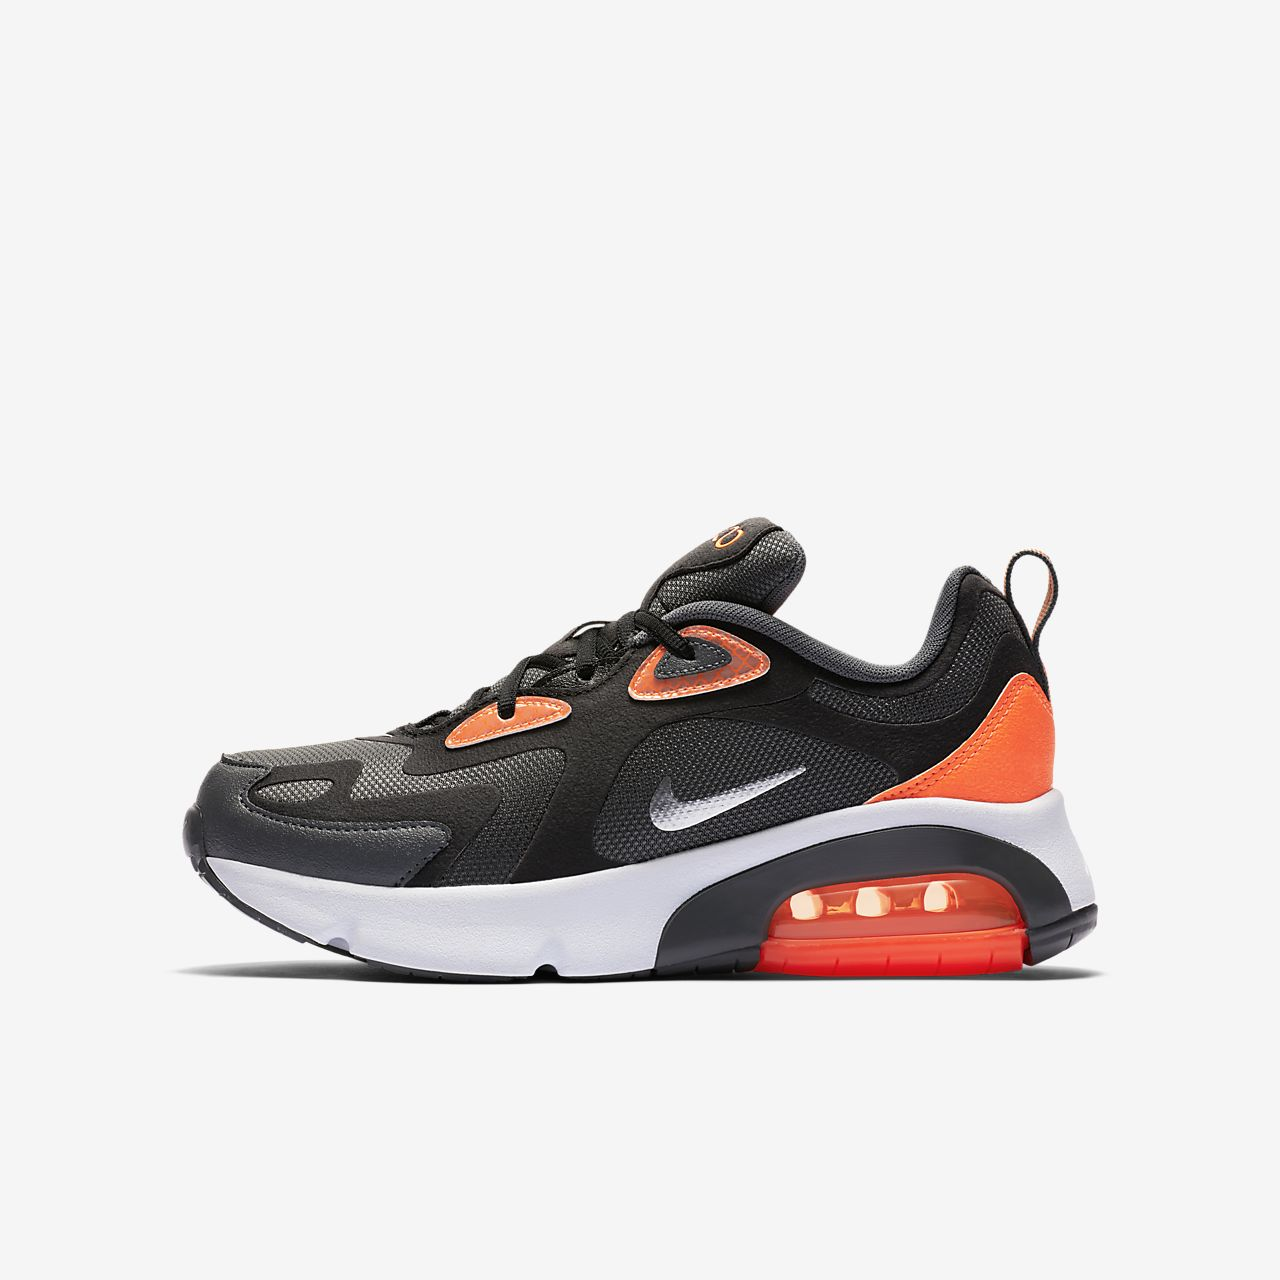 nike air max 200 damen orange Online Shopping für Frauen